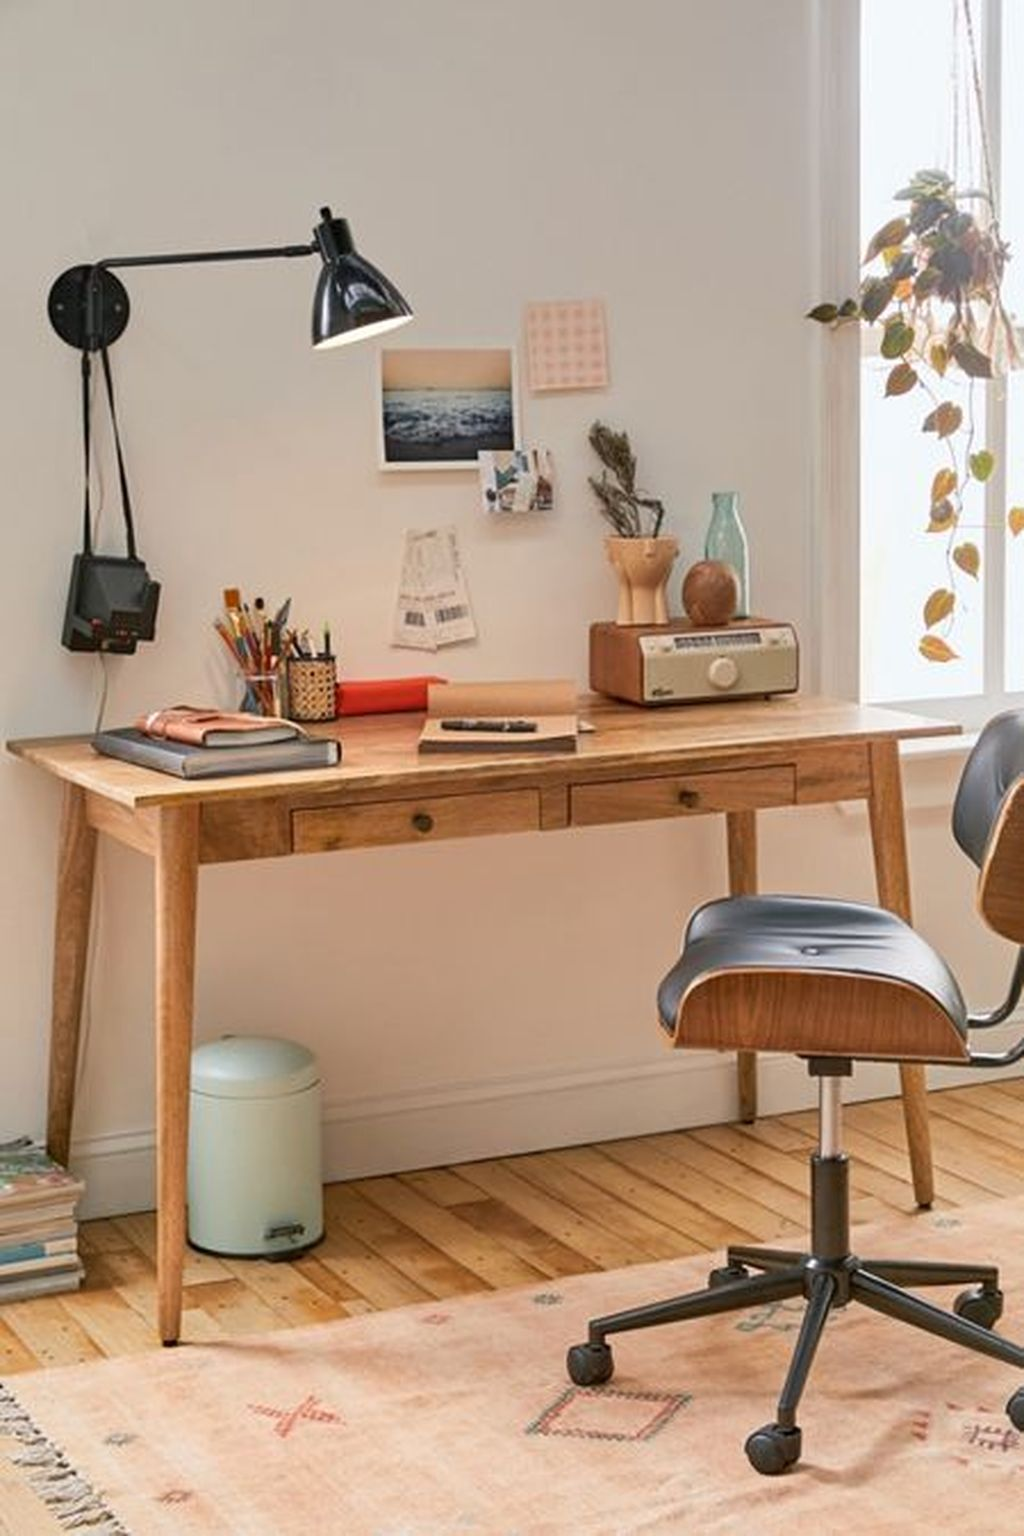 Inspiring Creative Desk Ideas You Must Try 06